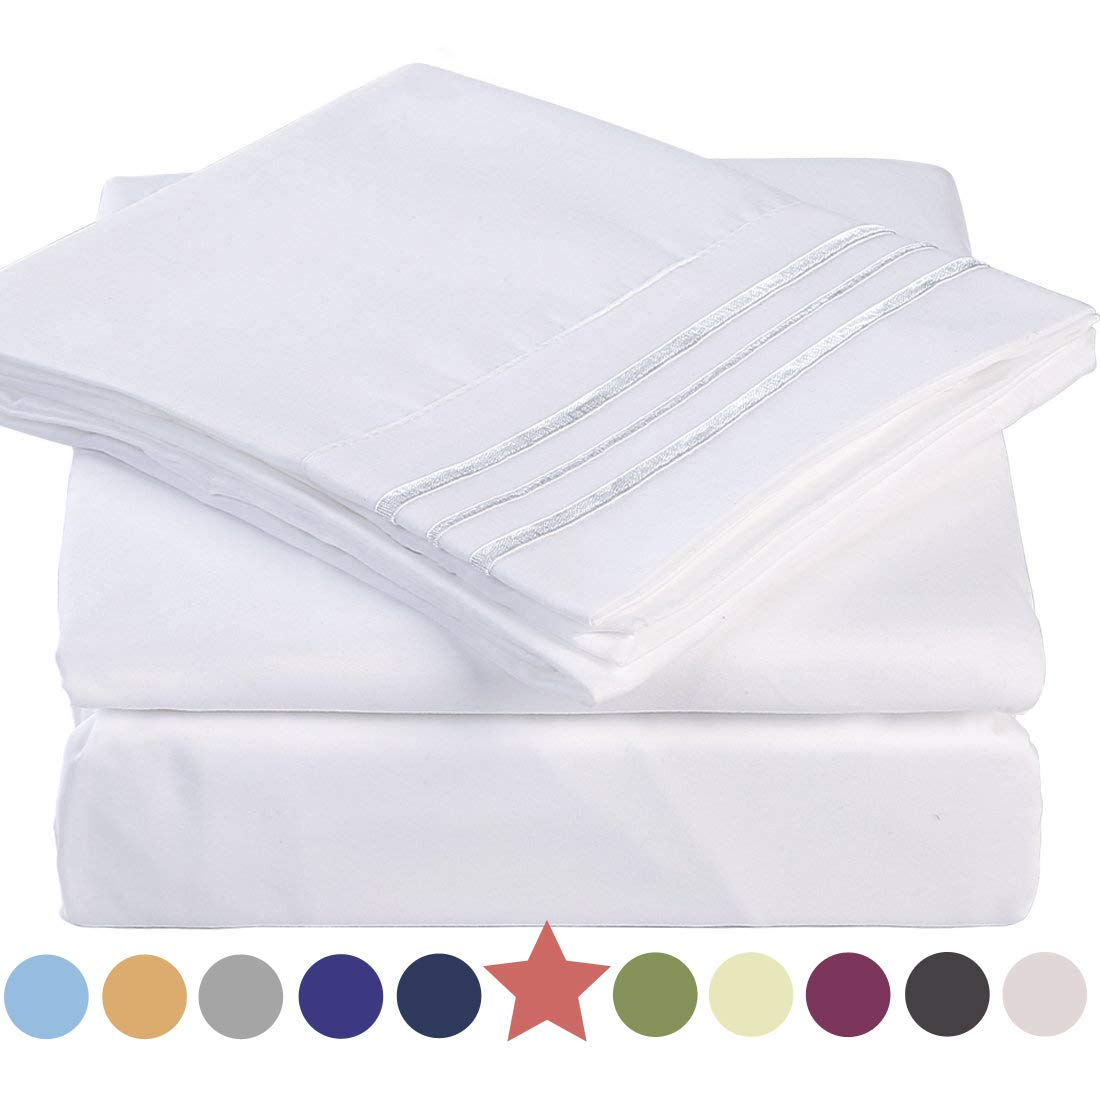 Premium 4 Piece Bed Sheet Set 1800 Thread Count Bedding 100% Microfiber Polyester